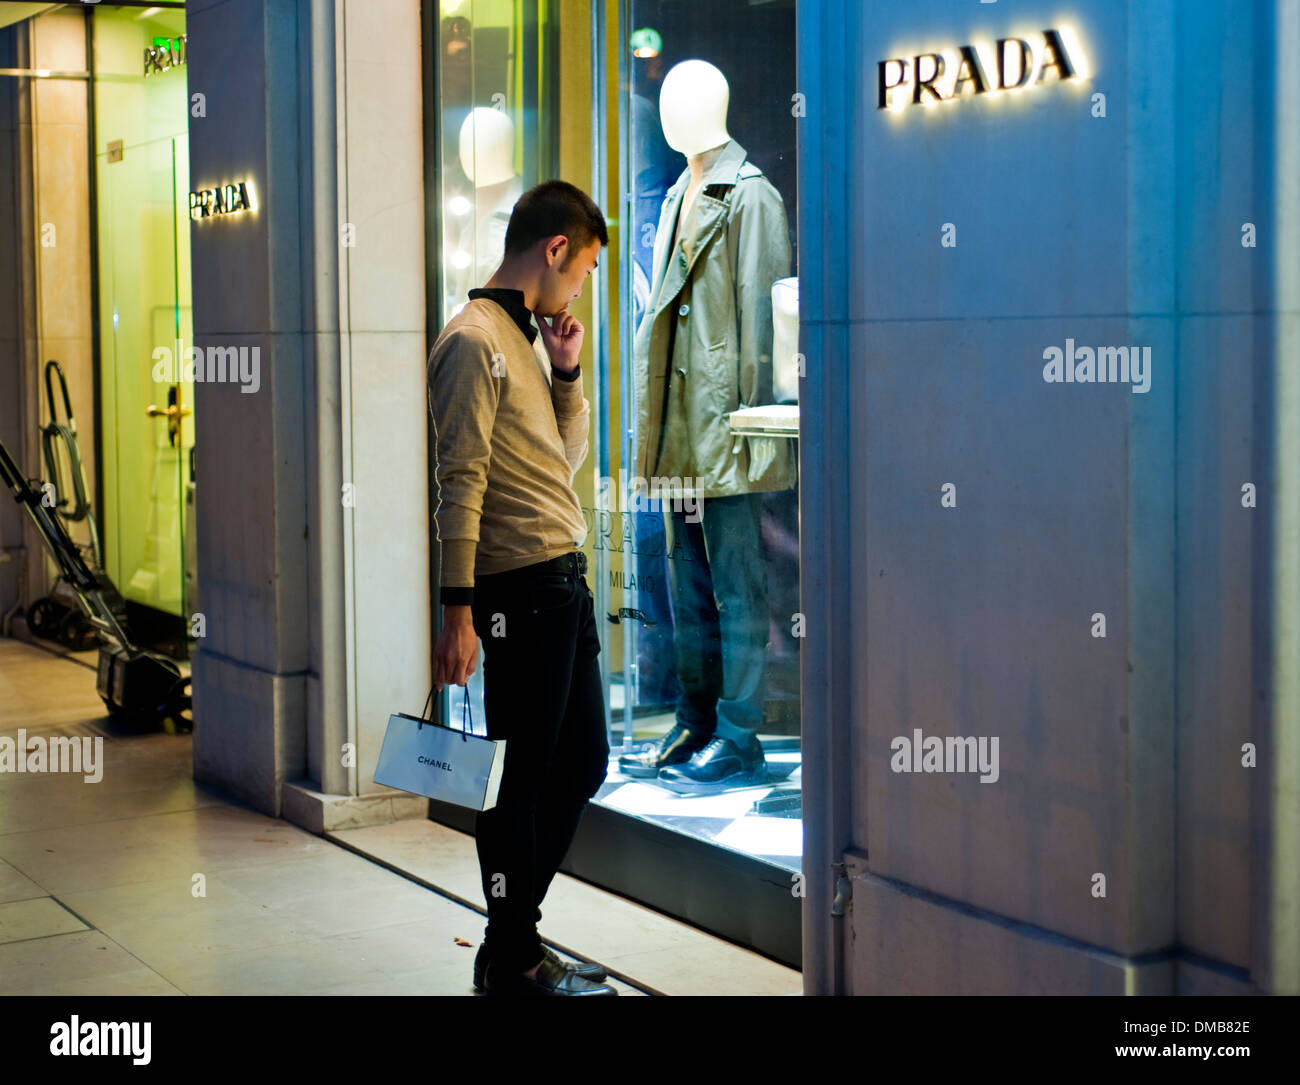 Paris, France, Young Chinese Man, Shopping Street, Luxury Brand Store, Prada, Shop Front WIndow, on Avenue Montaigne Stock Photo